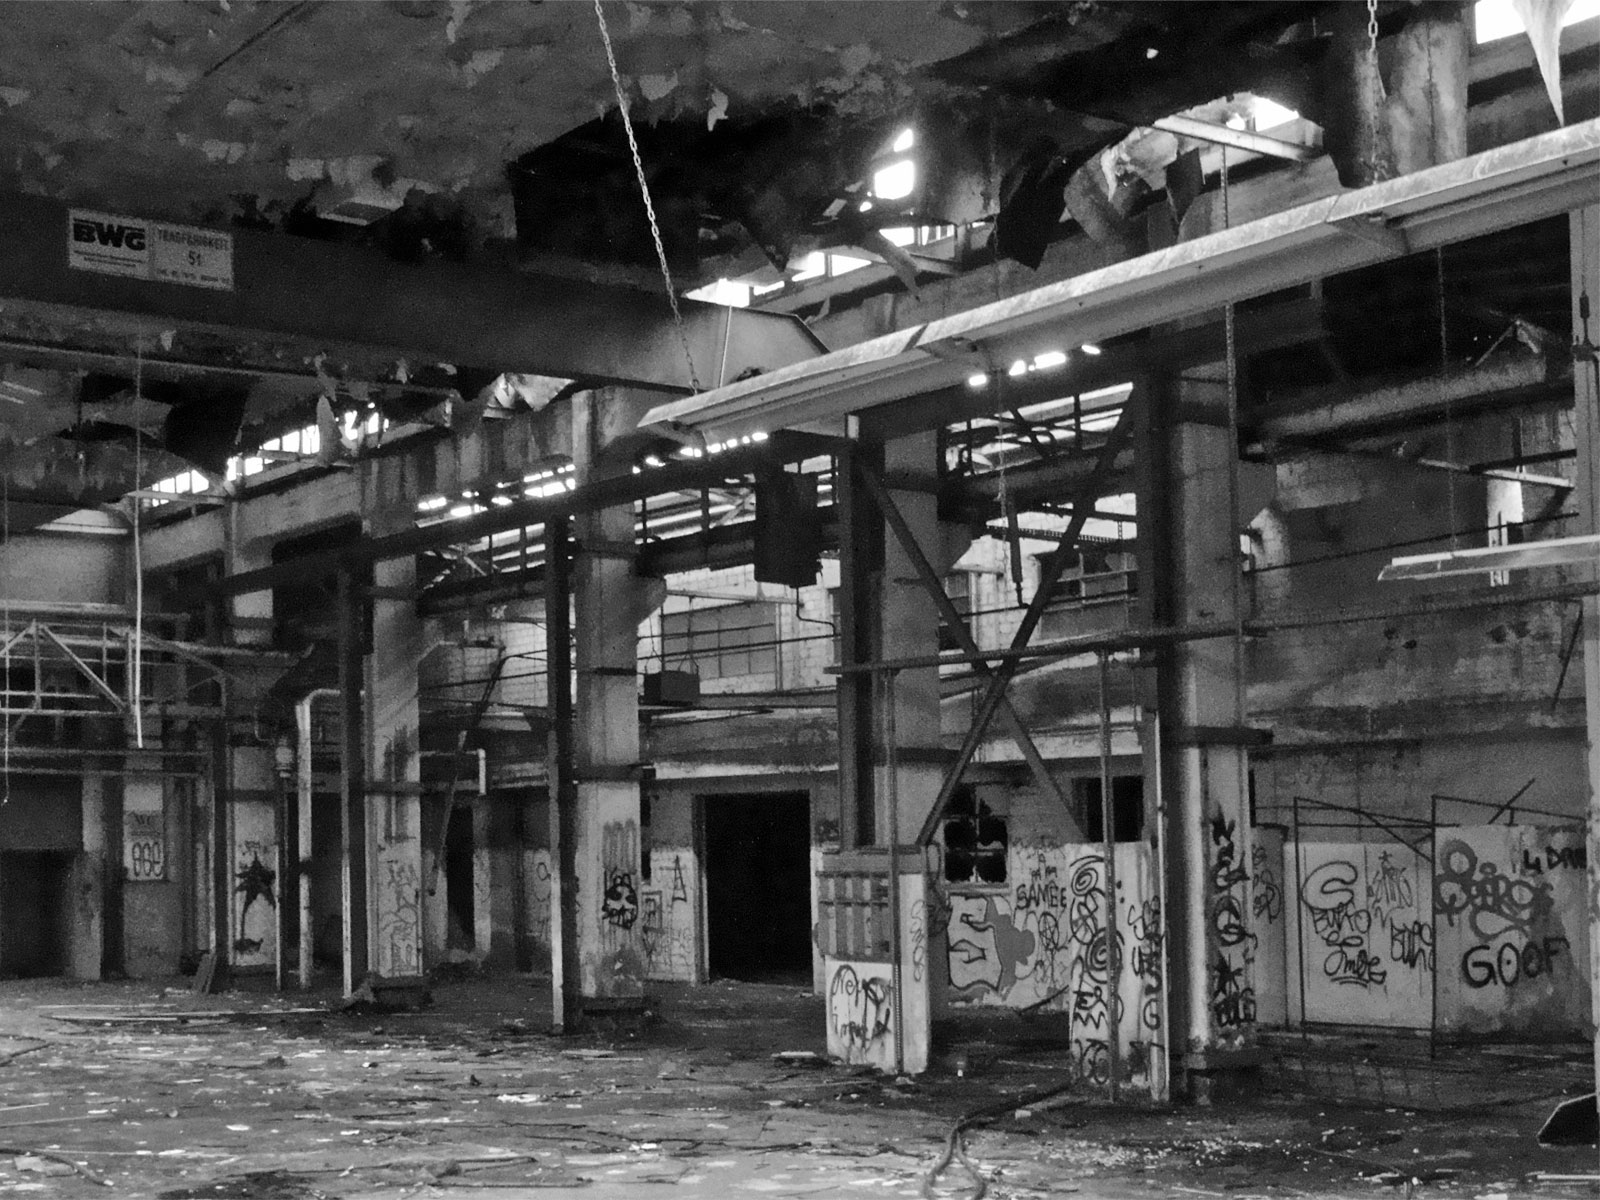 Urban Exploration Frankfurt – Lost Places: Teves Werke